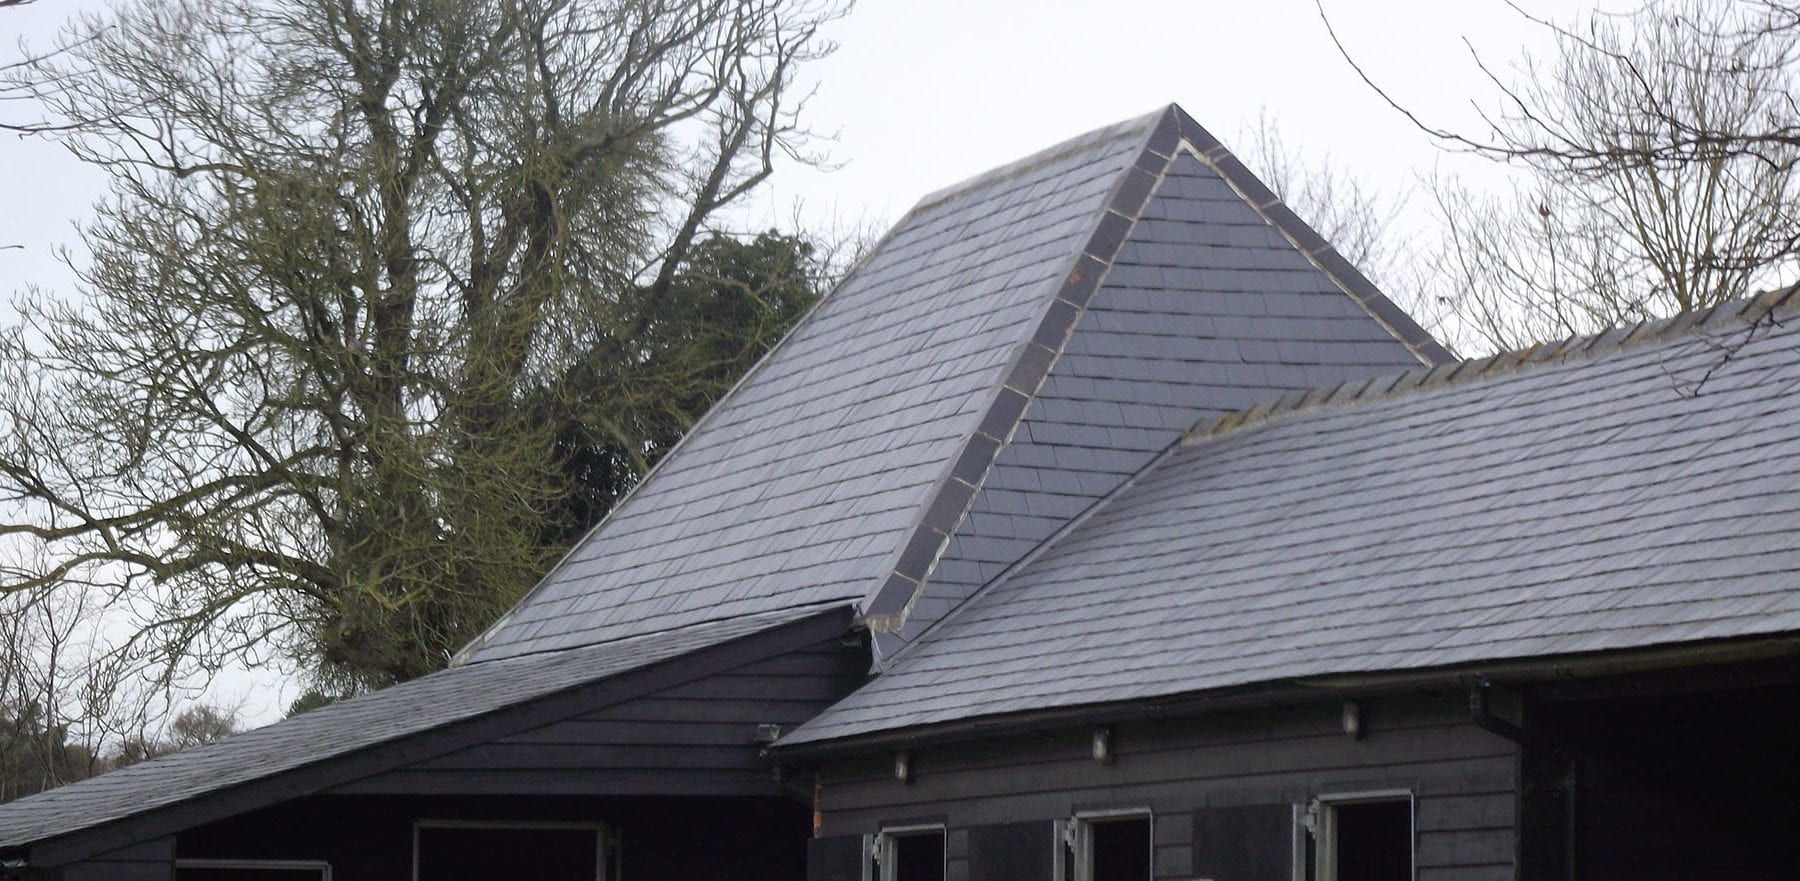 Lifestiles - Spanish Natural Slate Roof Tiles - Mayfield, England 2